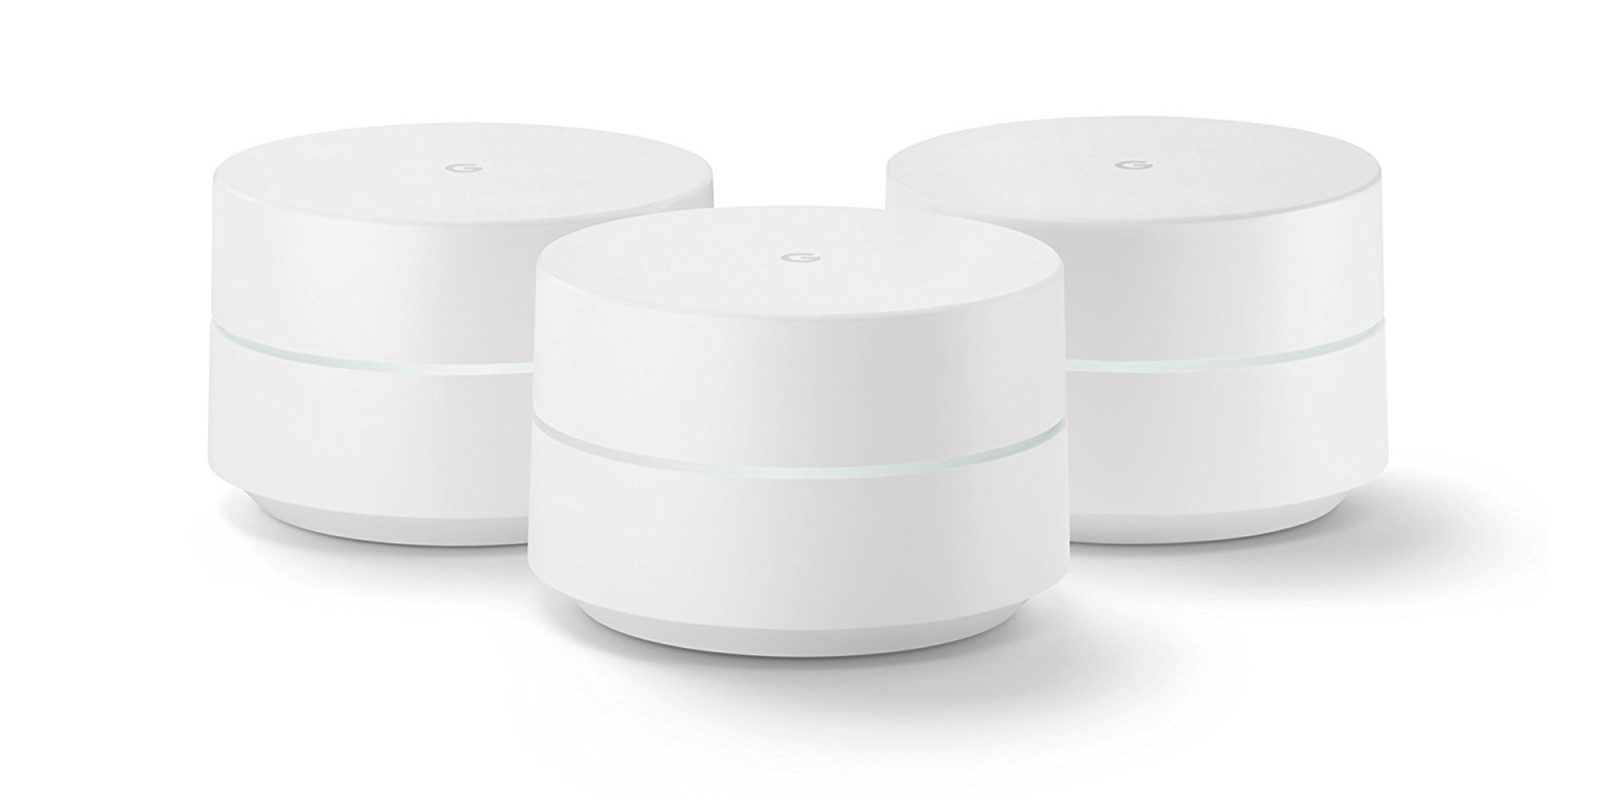 Google Wi-Fi 3-pack delivers 802.11ac mesh networking across your home for $250